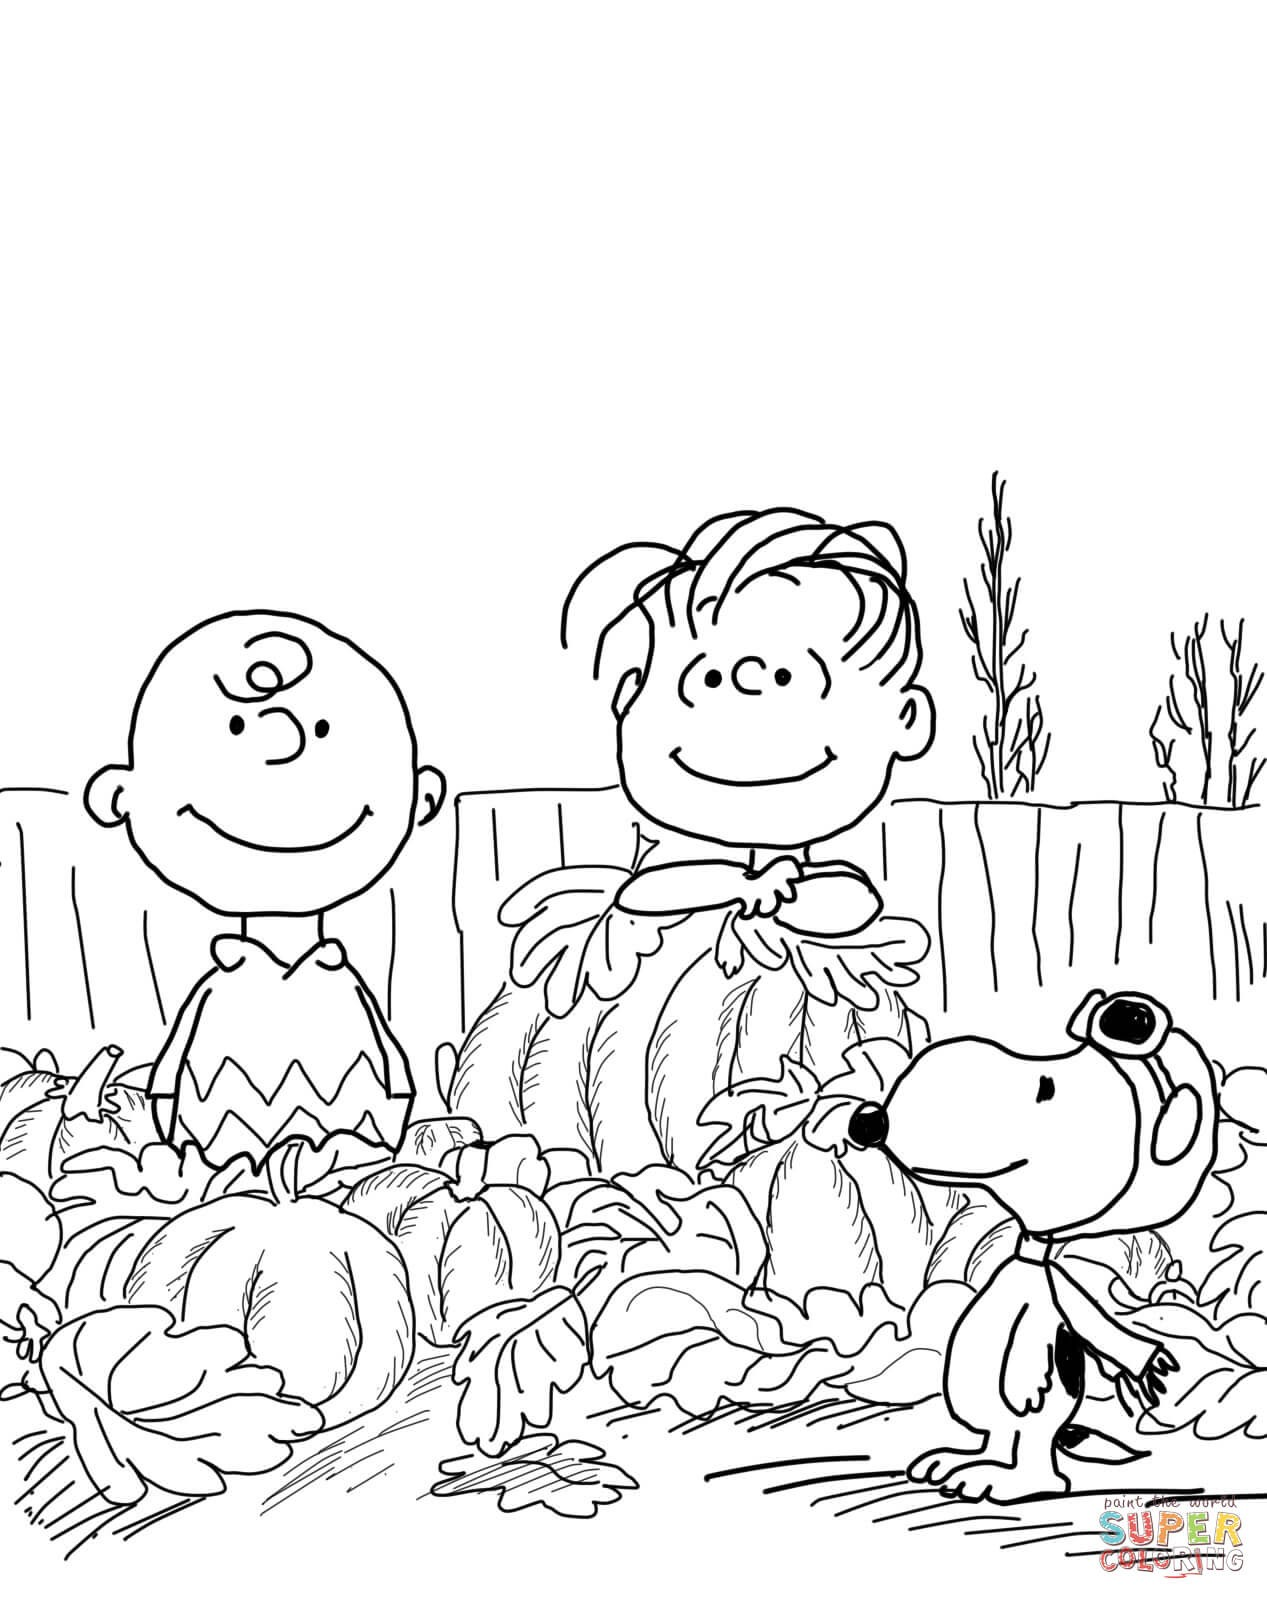 peanuts characters coloring pages peanuts characters drawing at getdrawings free download pages coloring peanuts characters